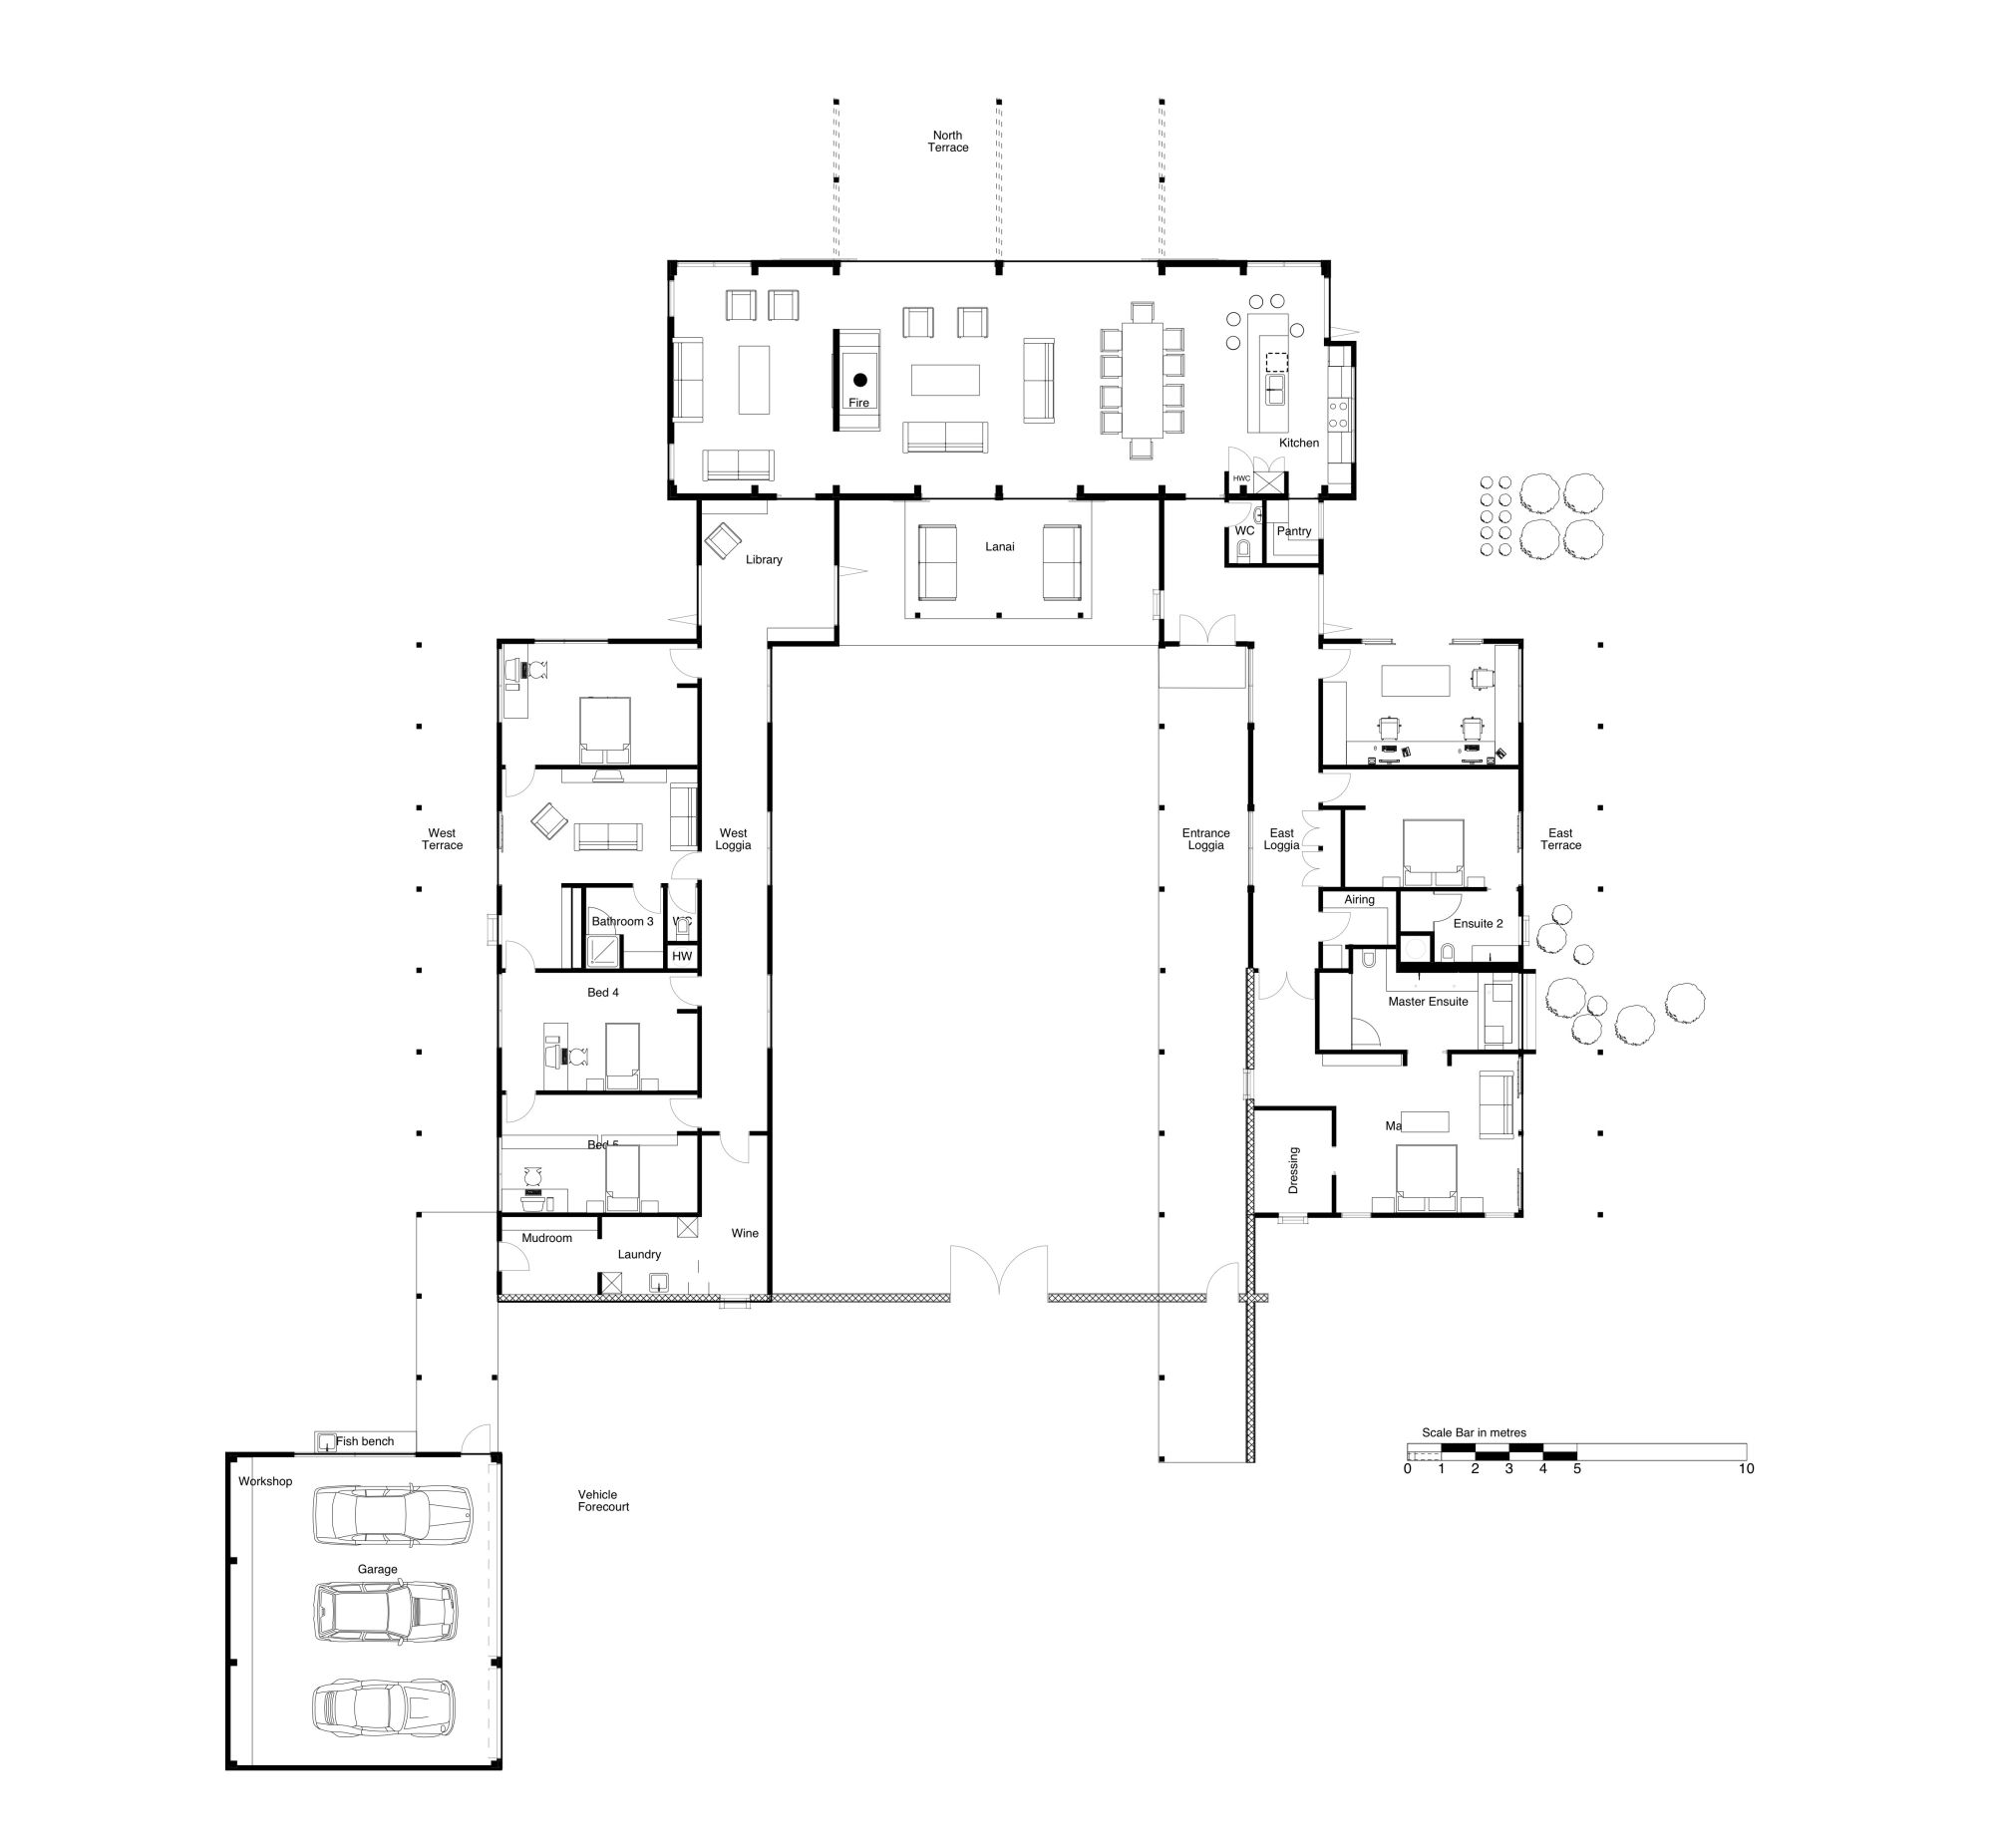 5226b4f0e8e44e03f400014e_evill-house-studio-pacific-architecture_evill_house_floor_plan.png (2000×1854)